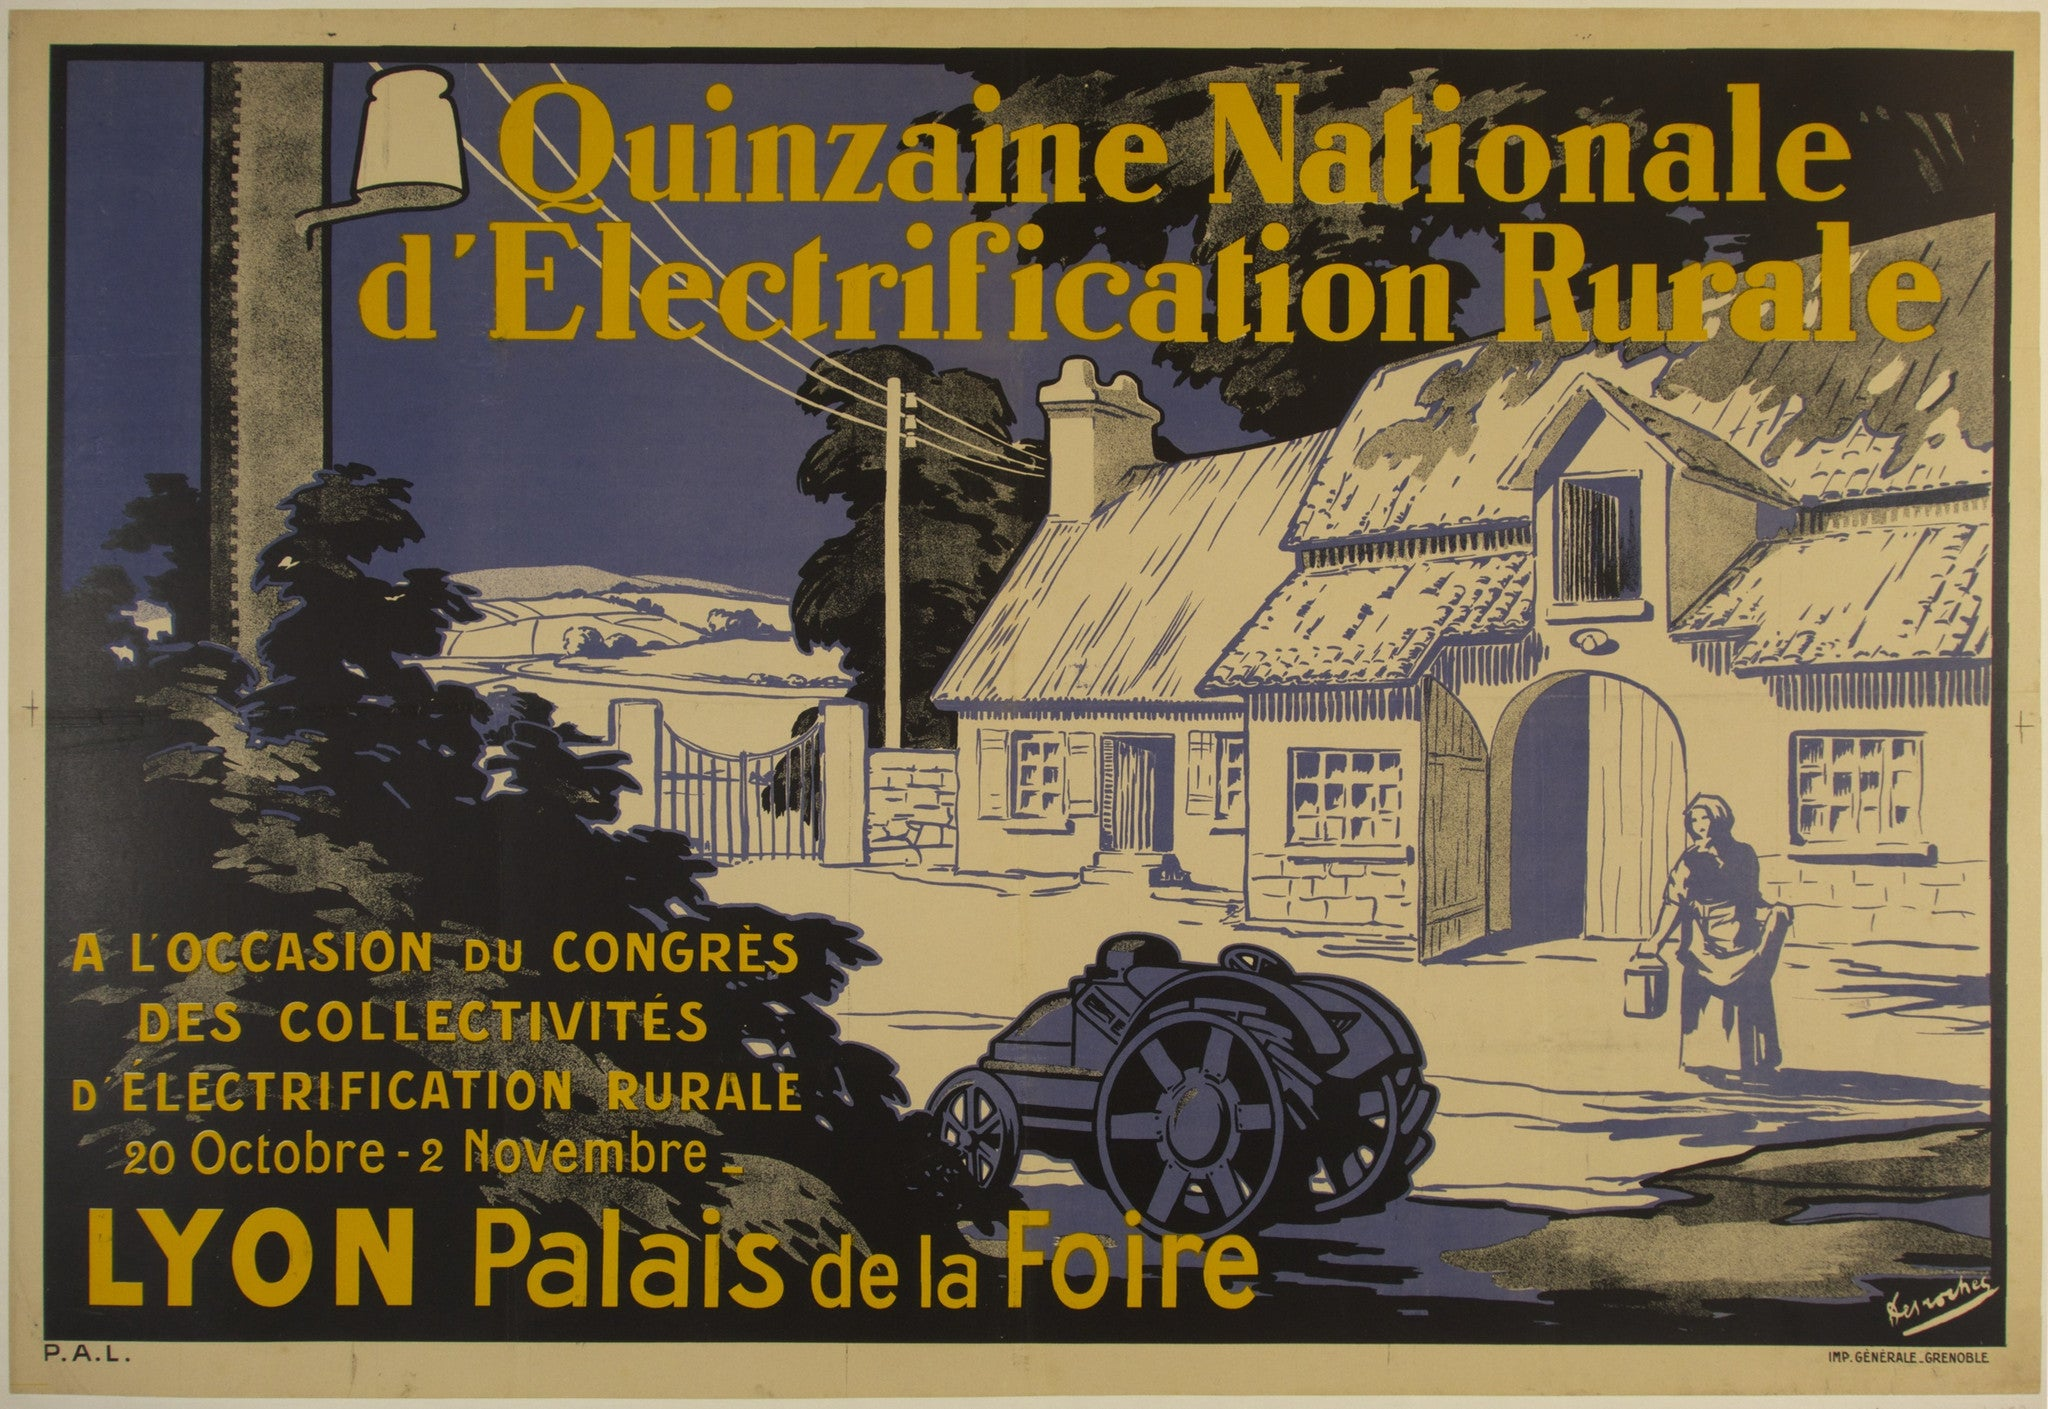 Quinzaine Nationale d'Electrification Rurale